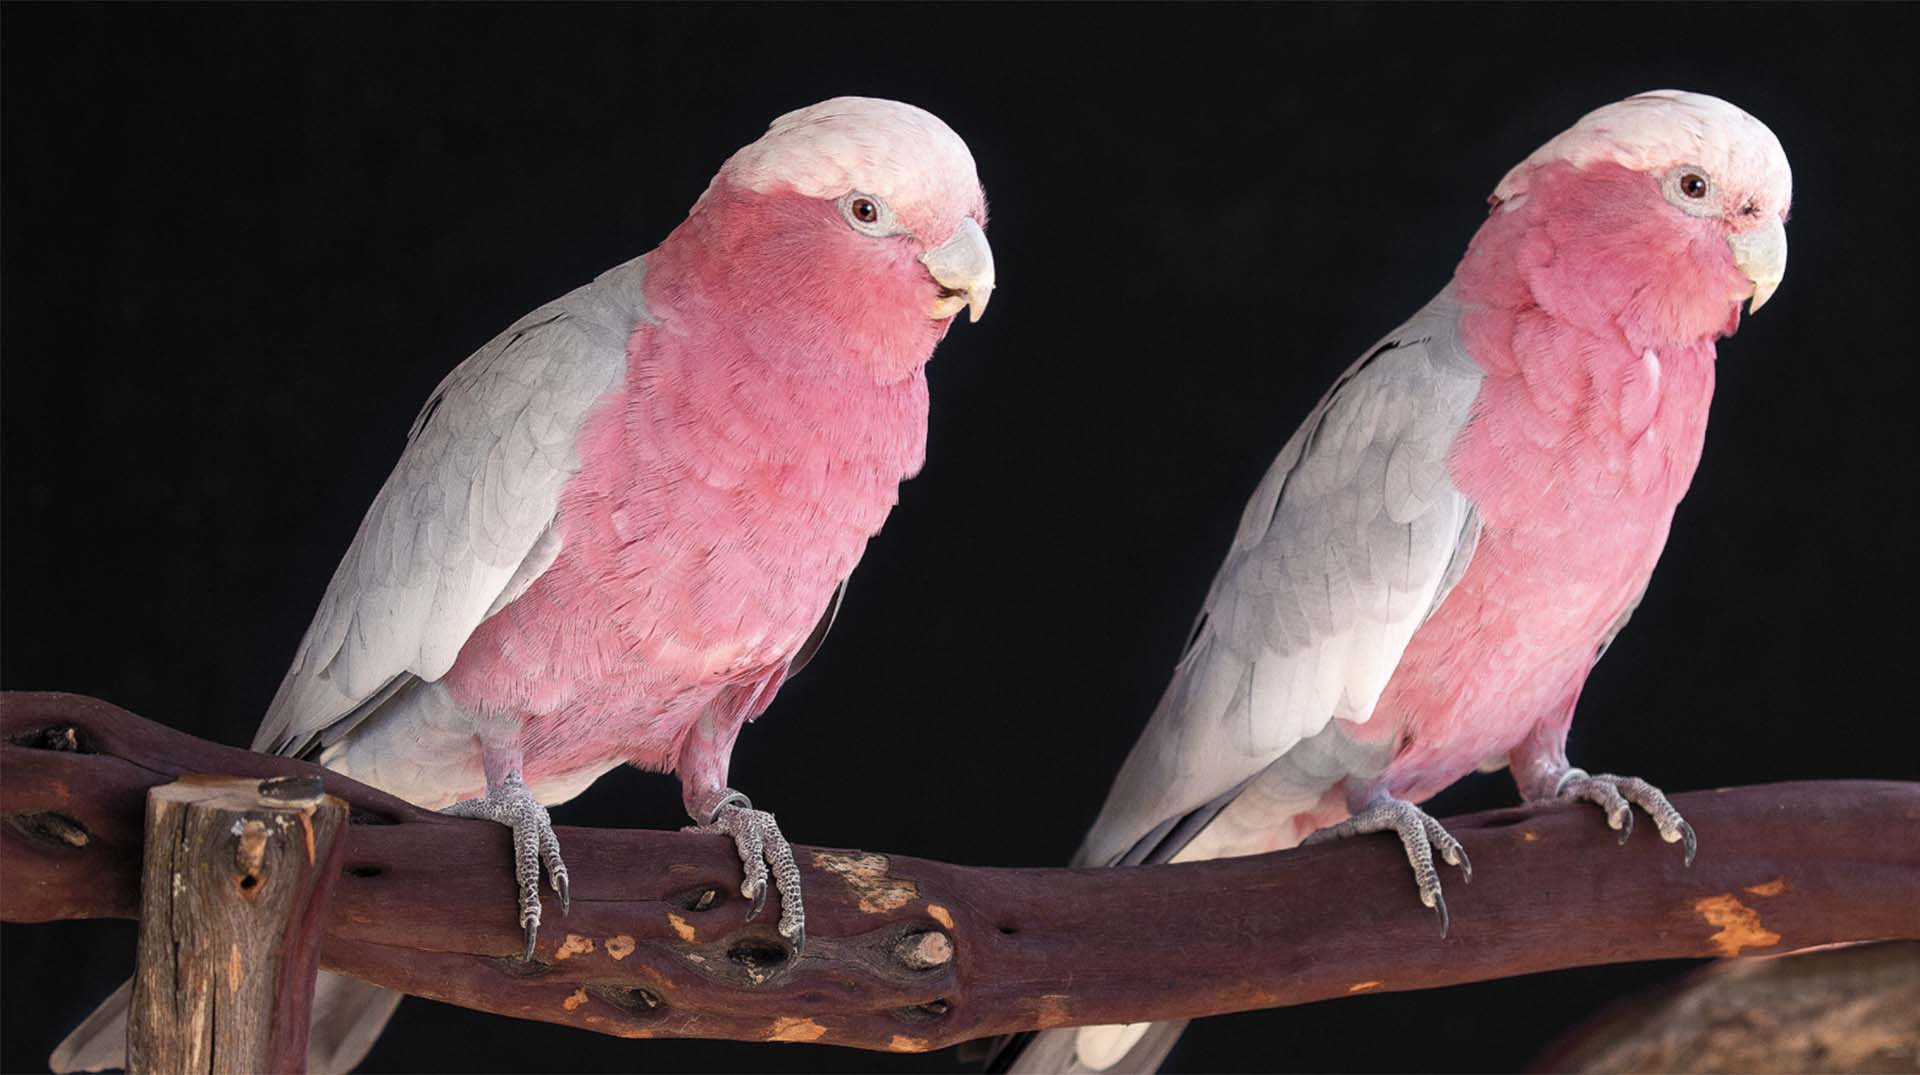 Galahs or rose-crested cockatoos